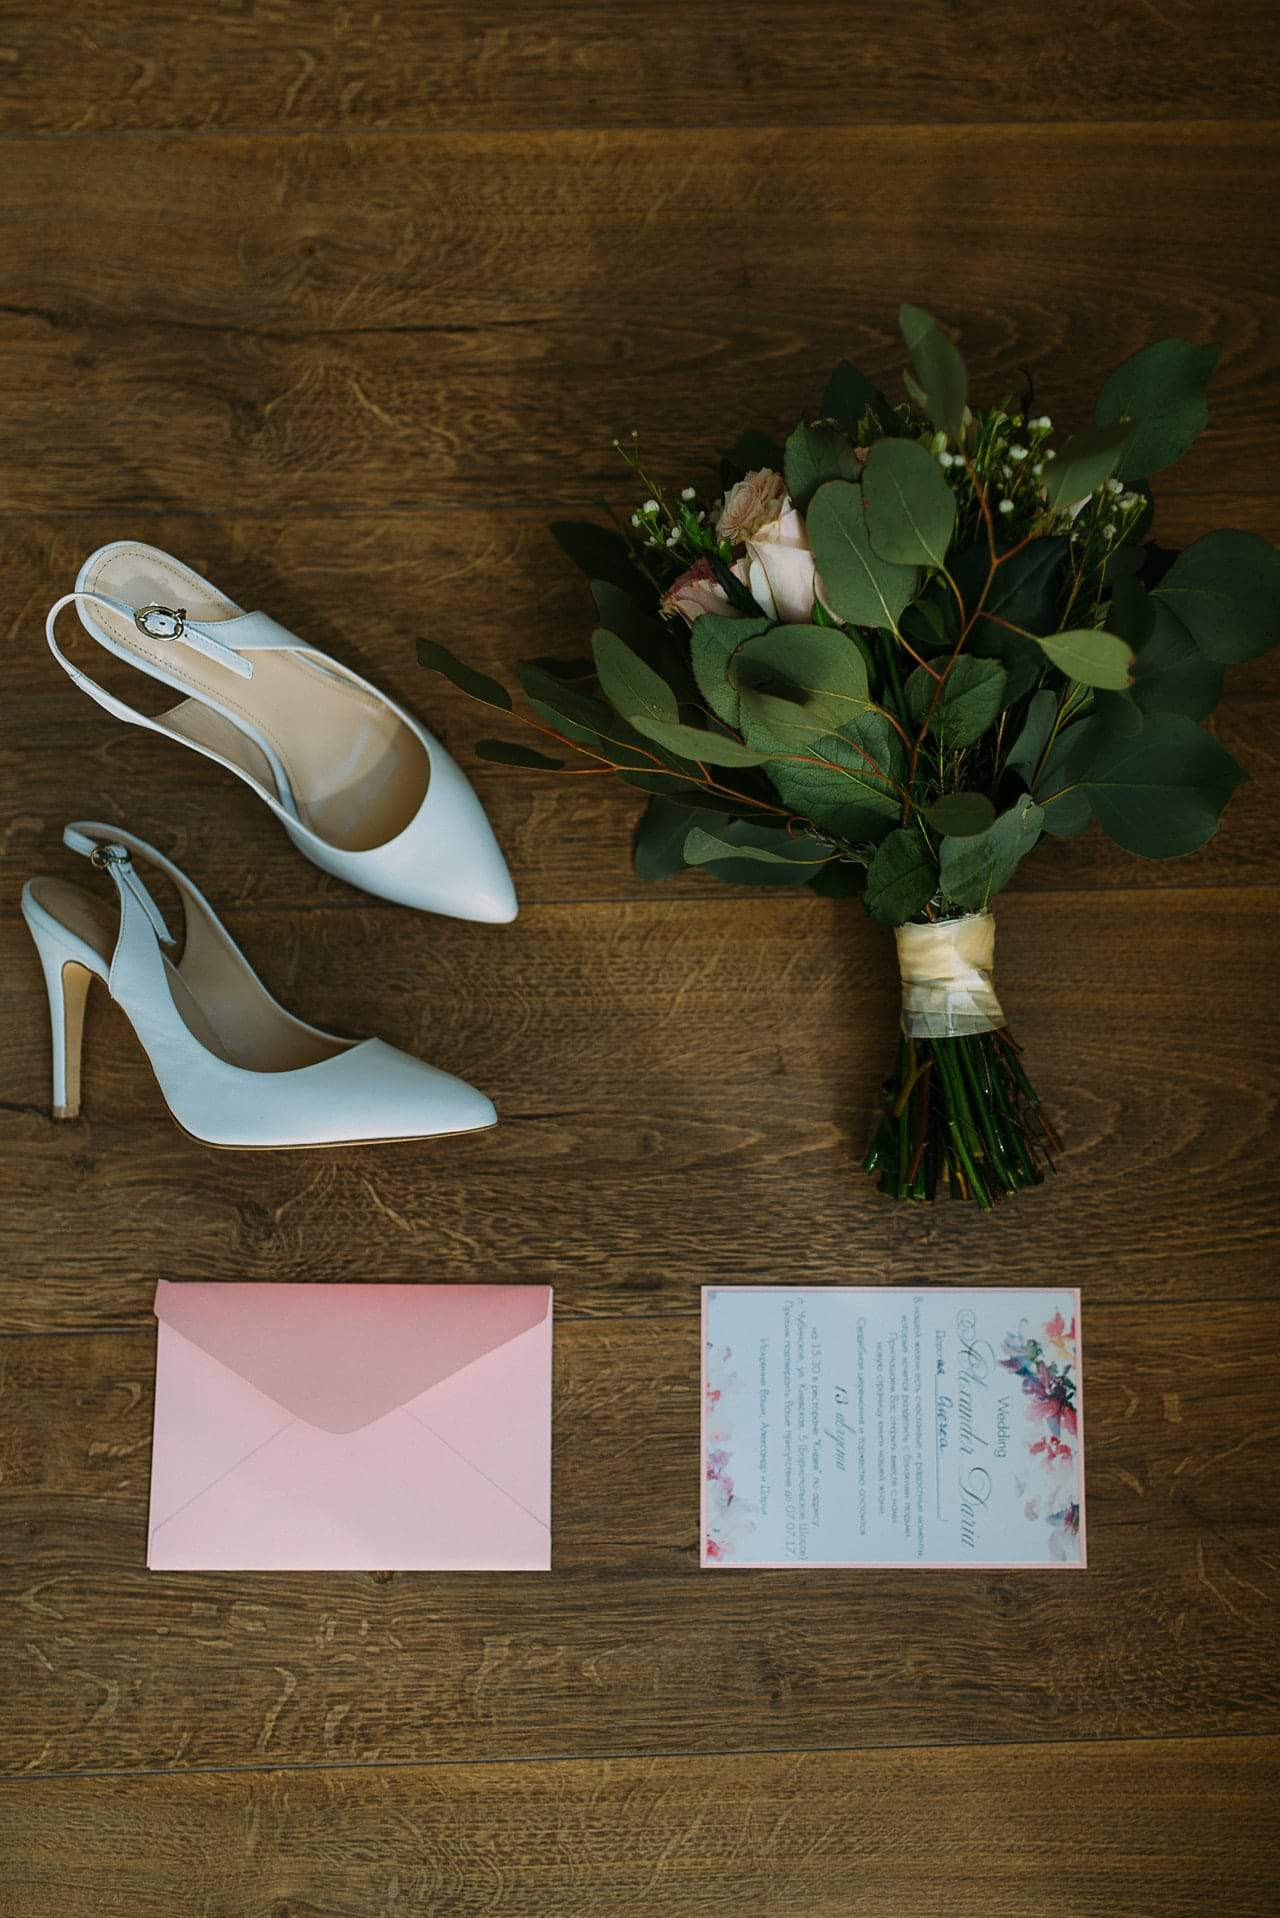 wedding invitation behind pair of bridal shoes and bouquet of flowers